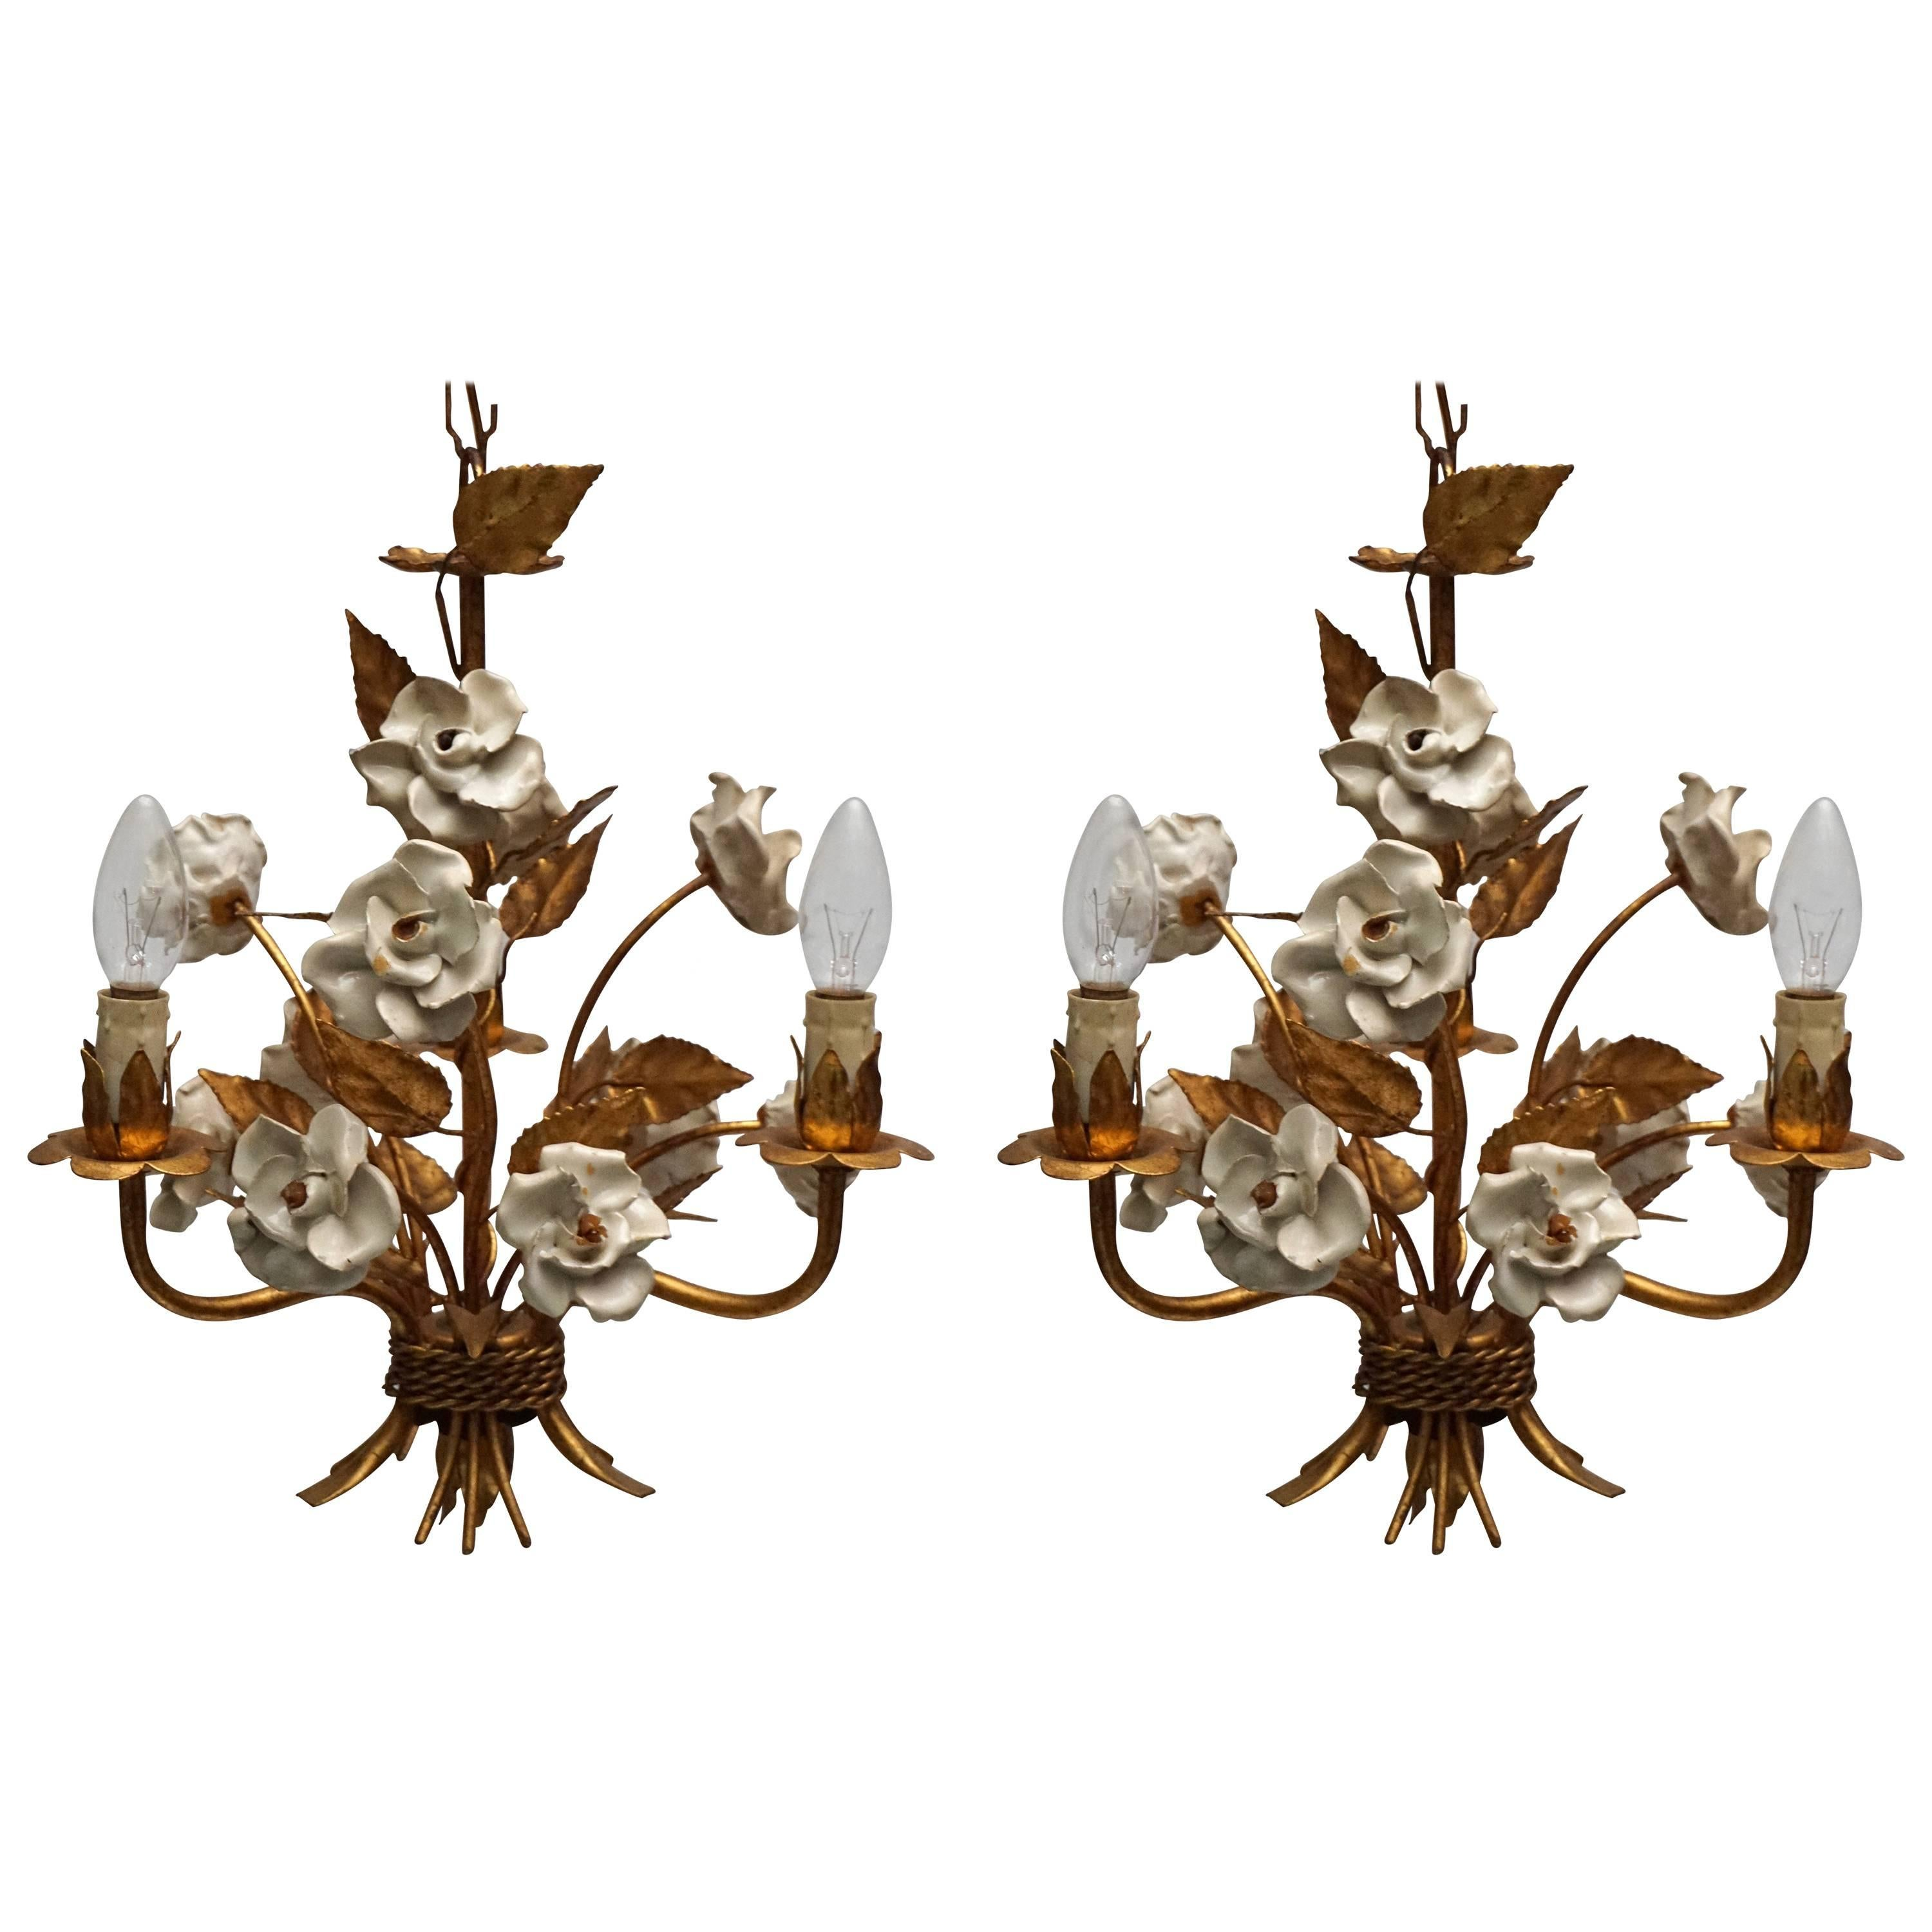 One of Two French Gilt Metal Chandeliers with Porcelain Flowers